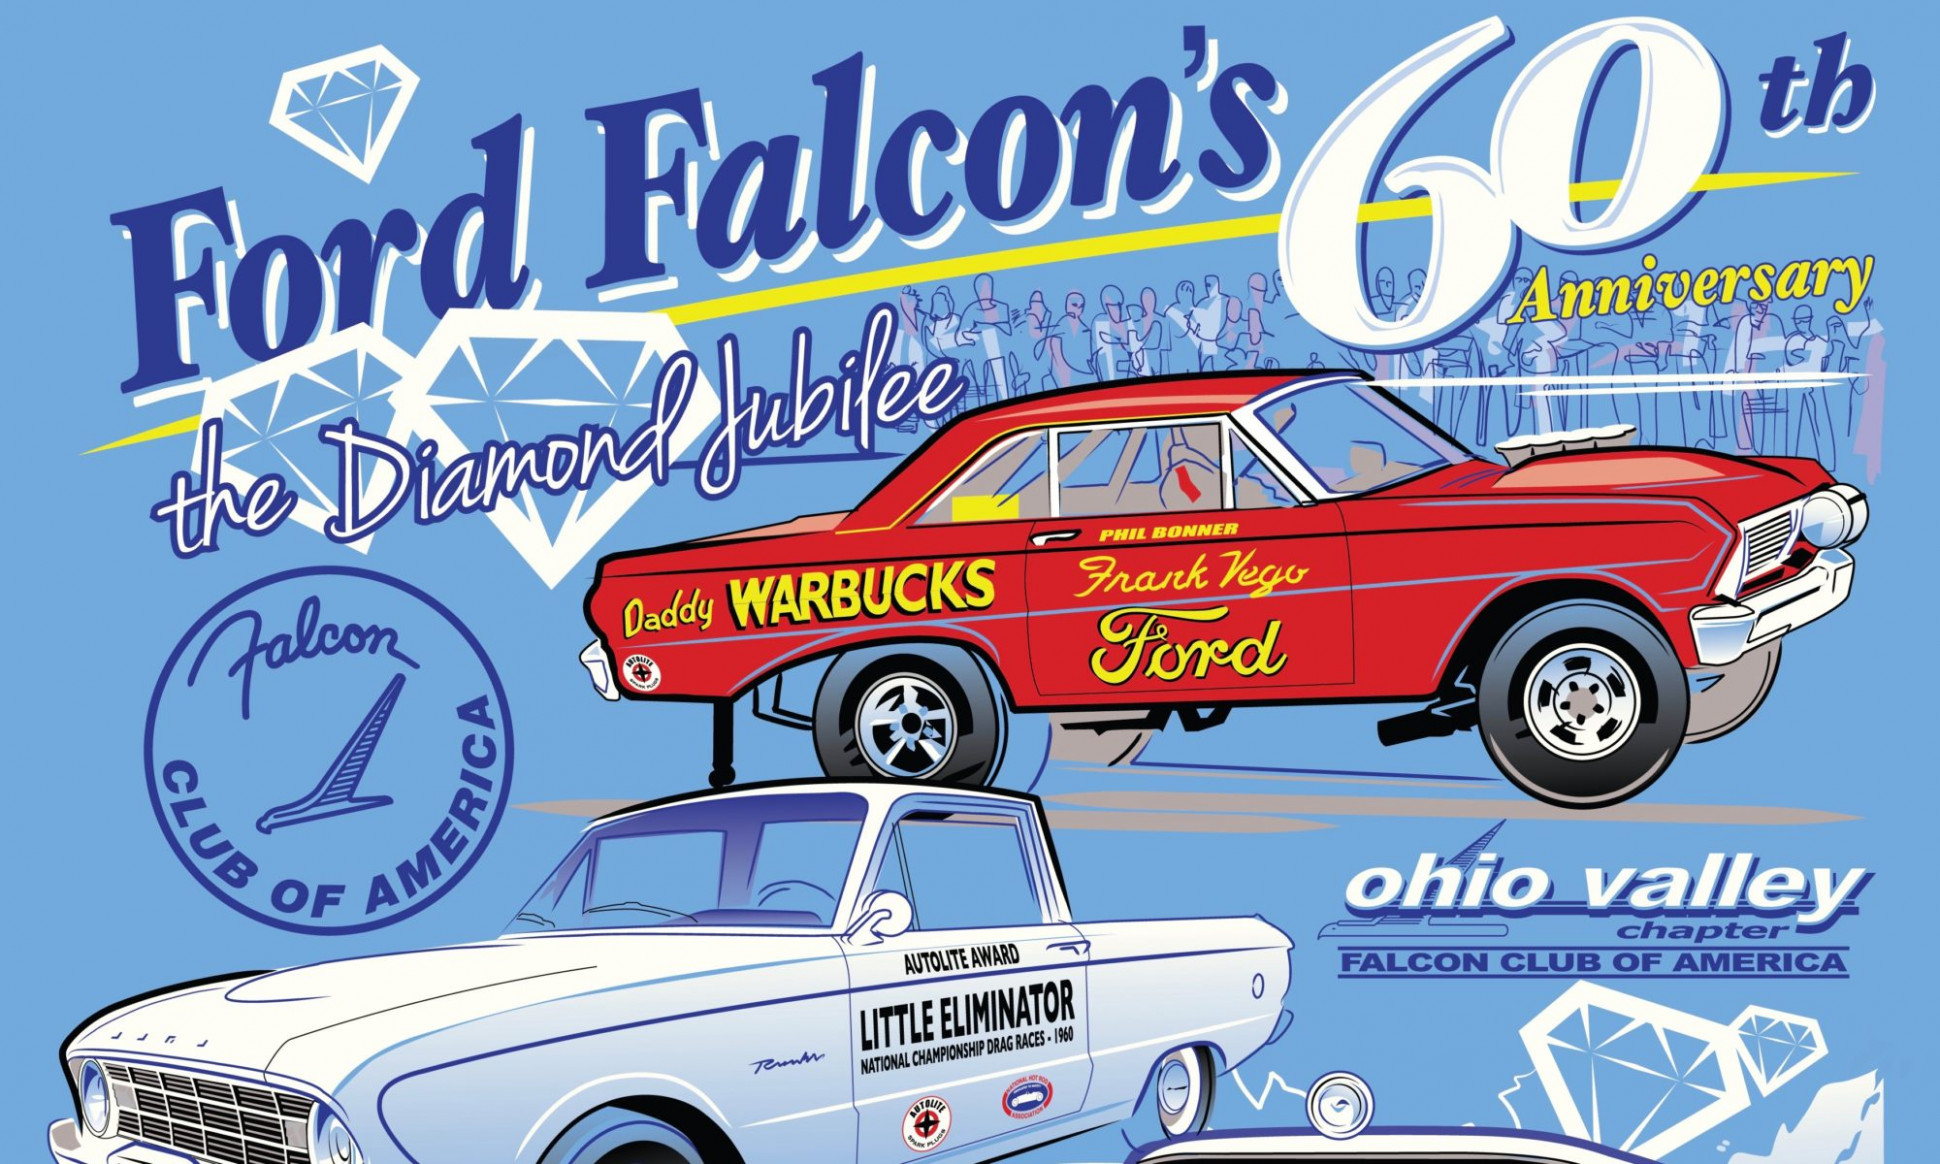 6 Falcon Nationals – THE DIAMOND JUBILEE!!!! - ford nationals 2020